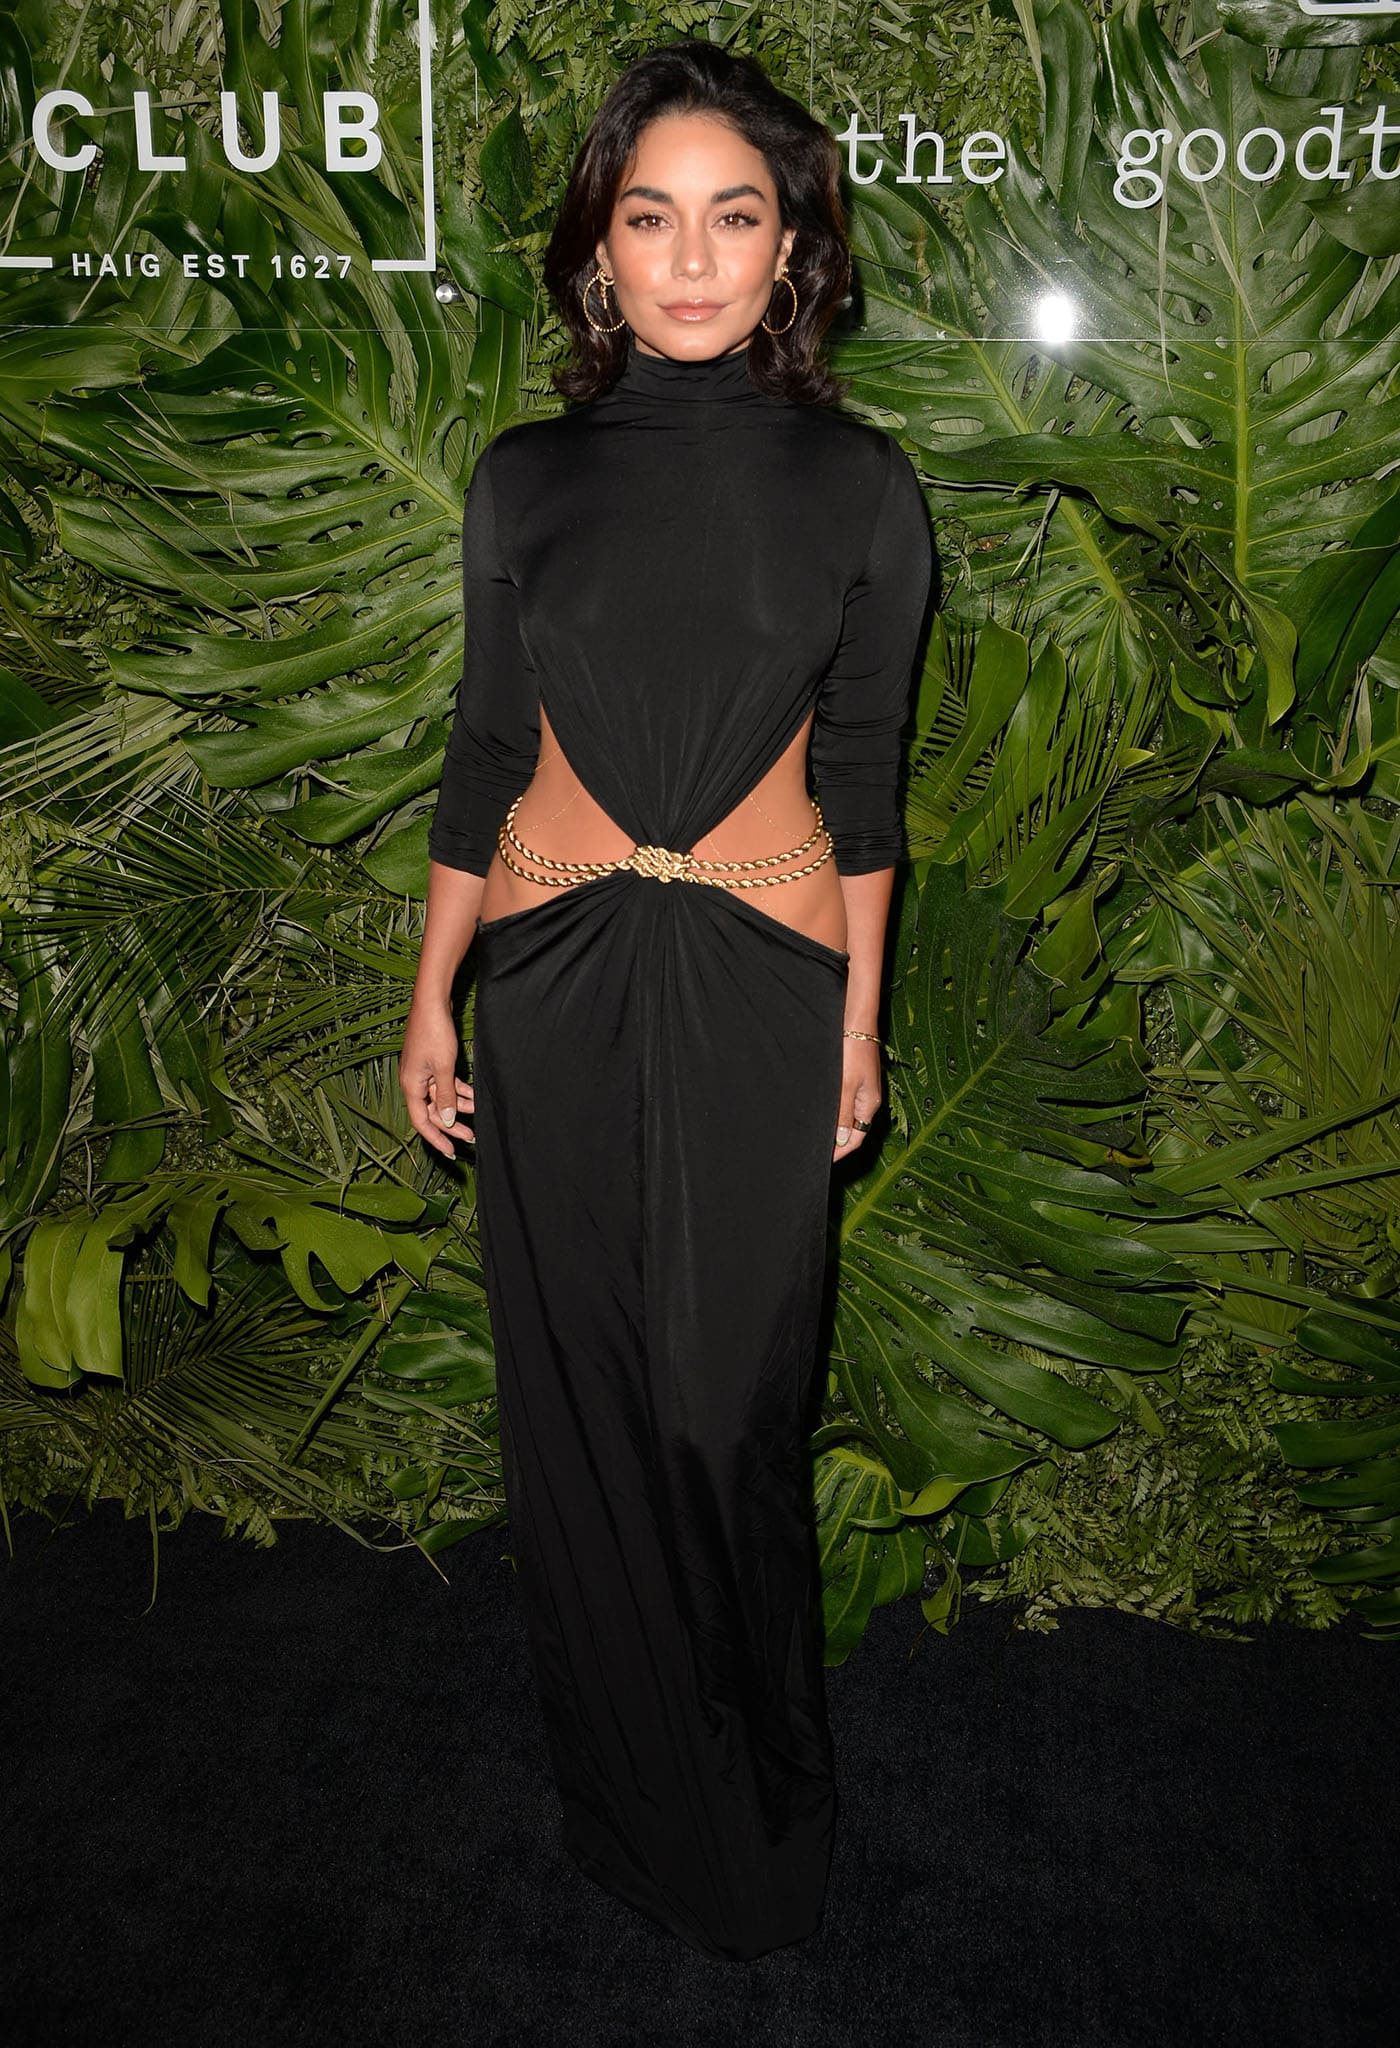 Vanessa Hudgens attends the Inter Miami CF Season Opening Party at The Goodtime Hotel on April 16, 2021